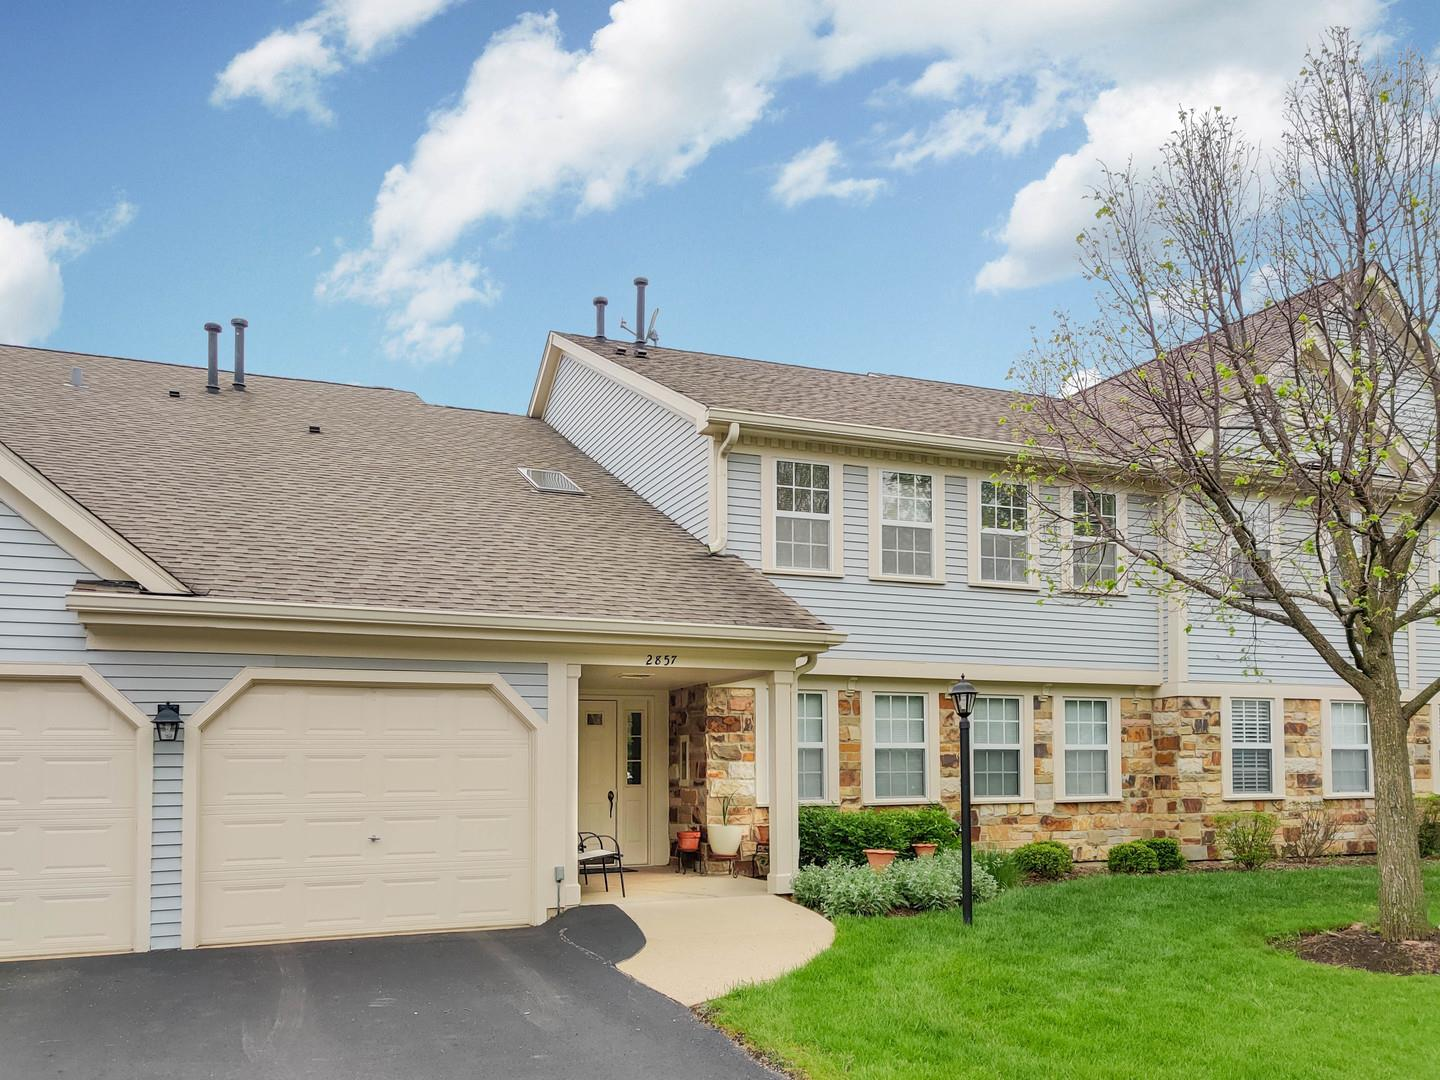 2857 MEADOW Lane #X2, Schaumburg, IL 60193 - #: 11079459